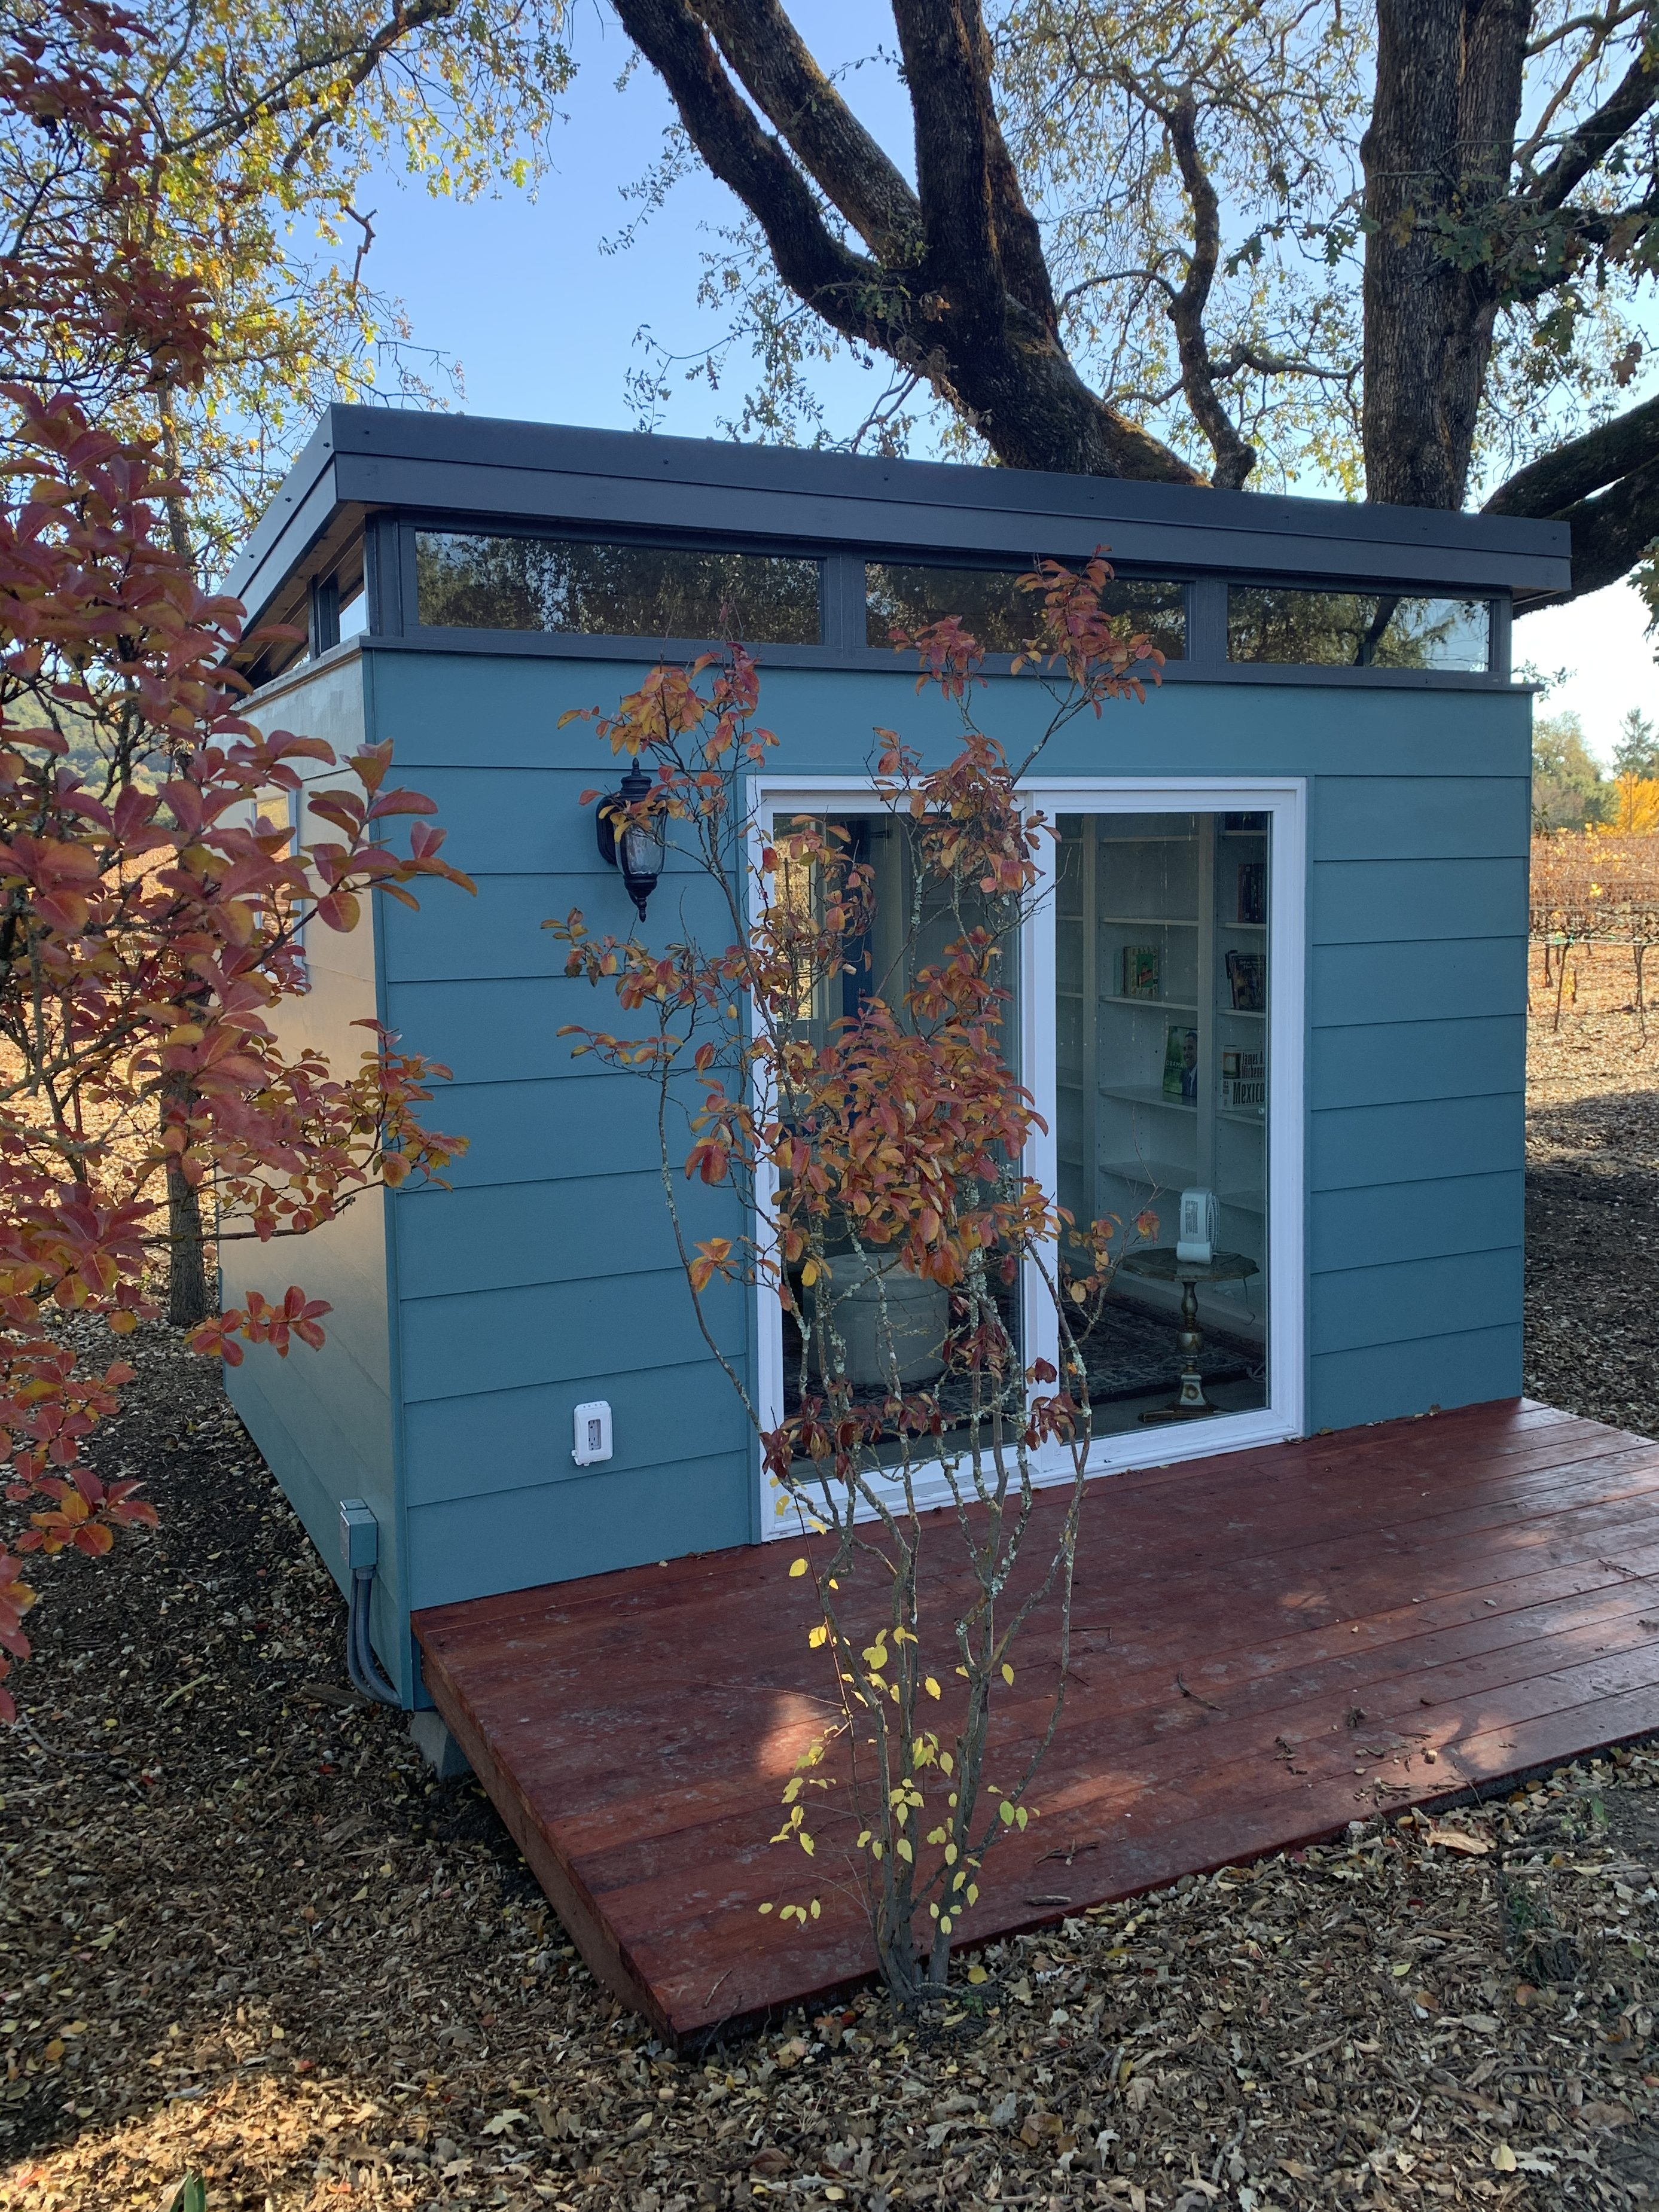 A blue-green shed in fall foliage.